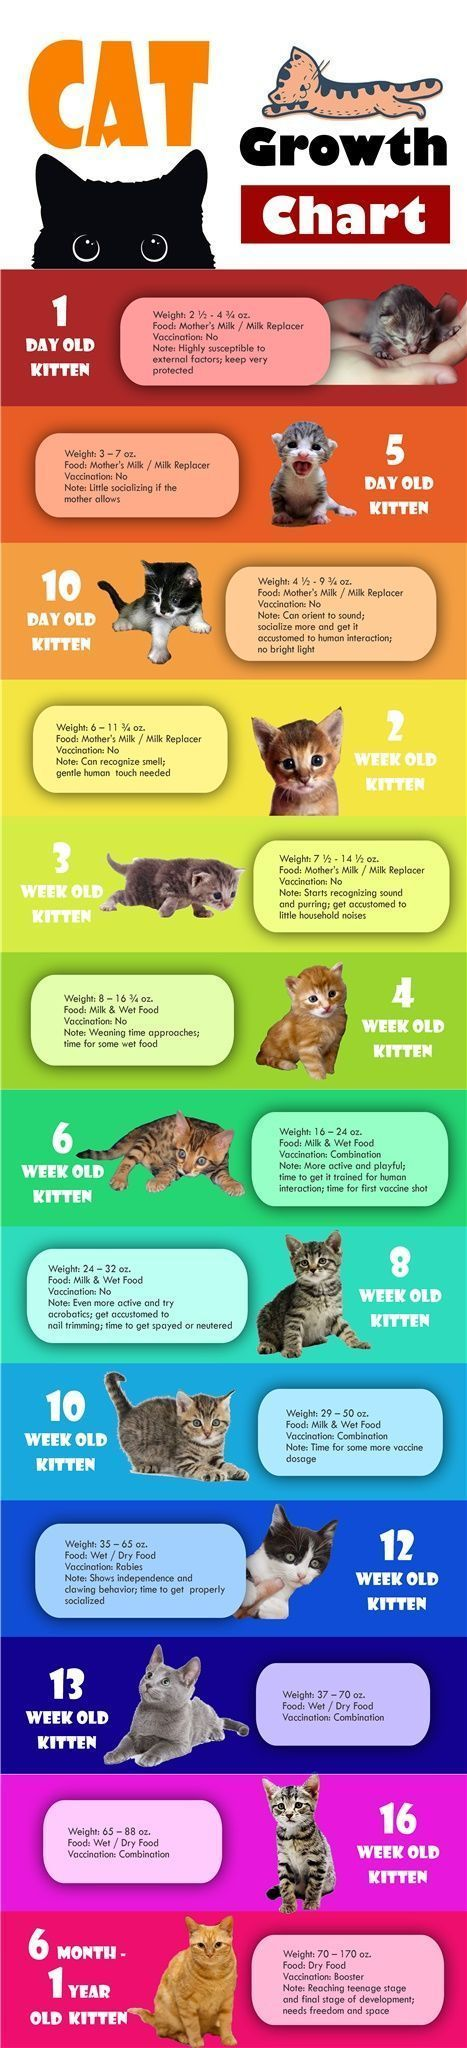 Infographic Kitten Cat Growth Chart By Age Weight And Food Source Http Best1x Com Kitten Cat Growth Chart Cat Infographic Kitten Care Cats And Kittens